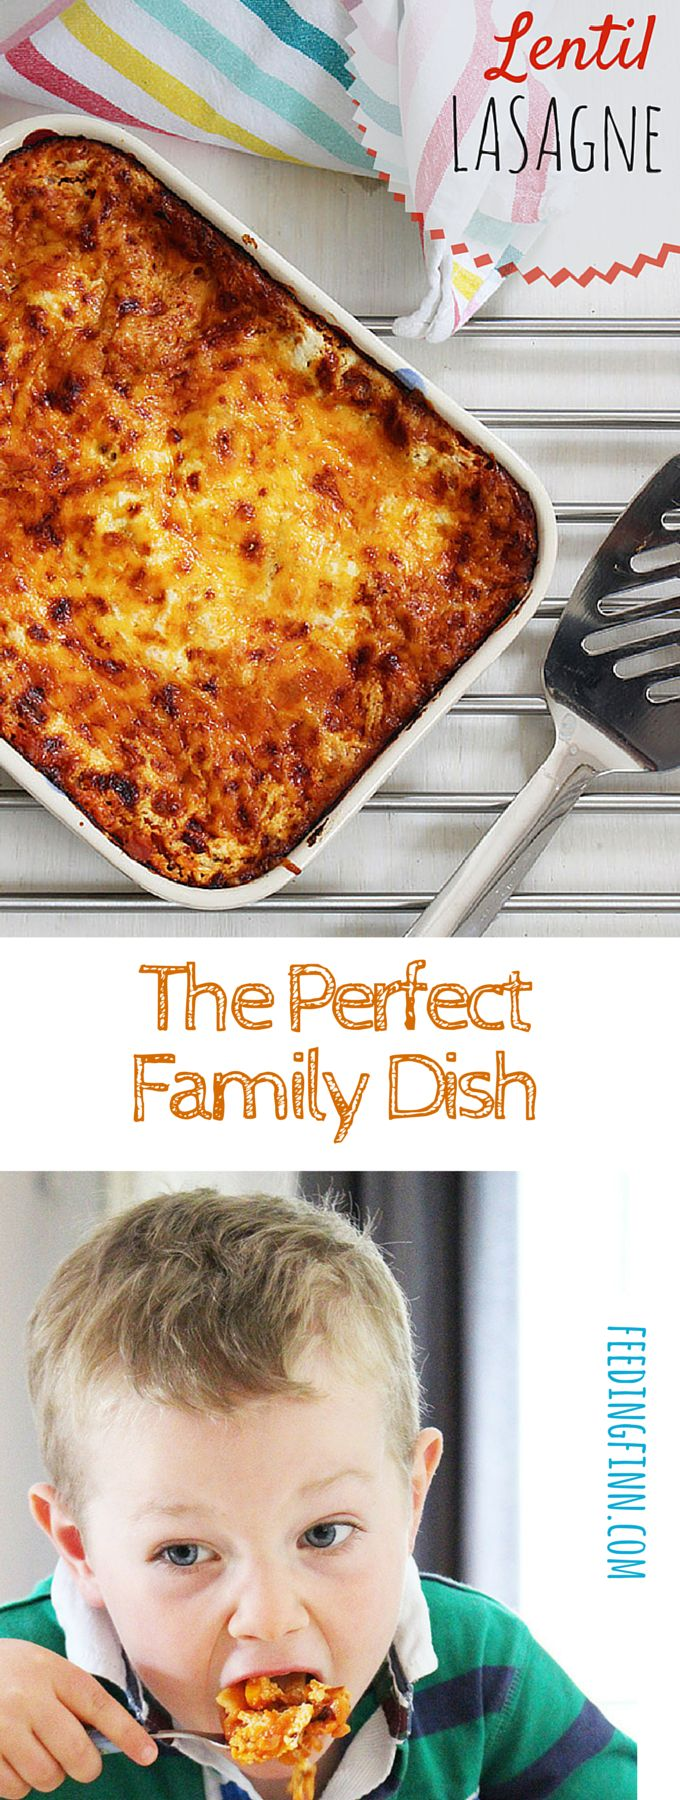 This is a brilliant veggie version of traditional lasagne. It is the perfect family dish and is perfect for baby-led weaning (blw)  Your kids will LOVE this!